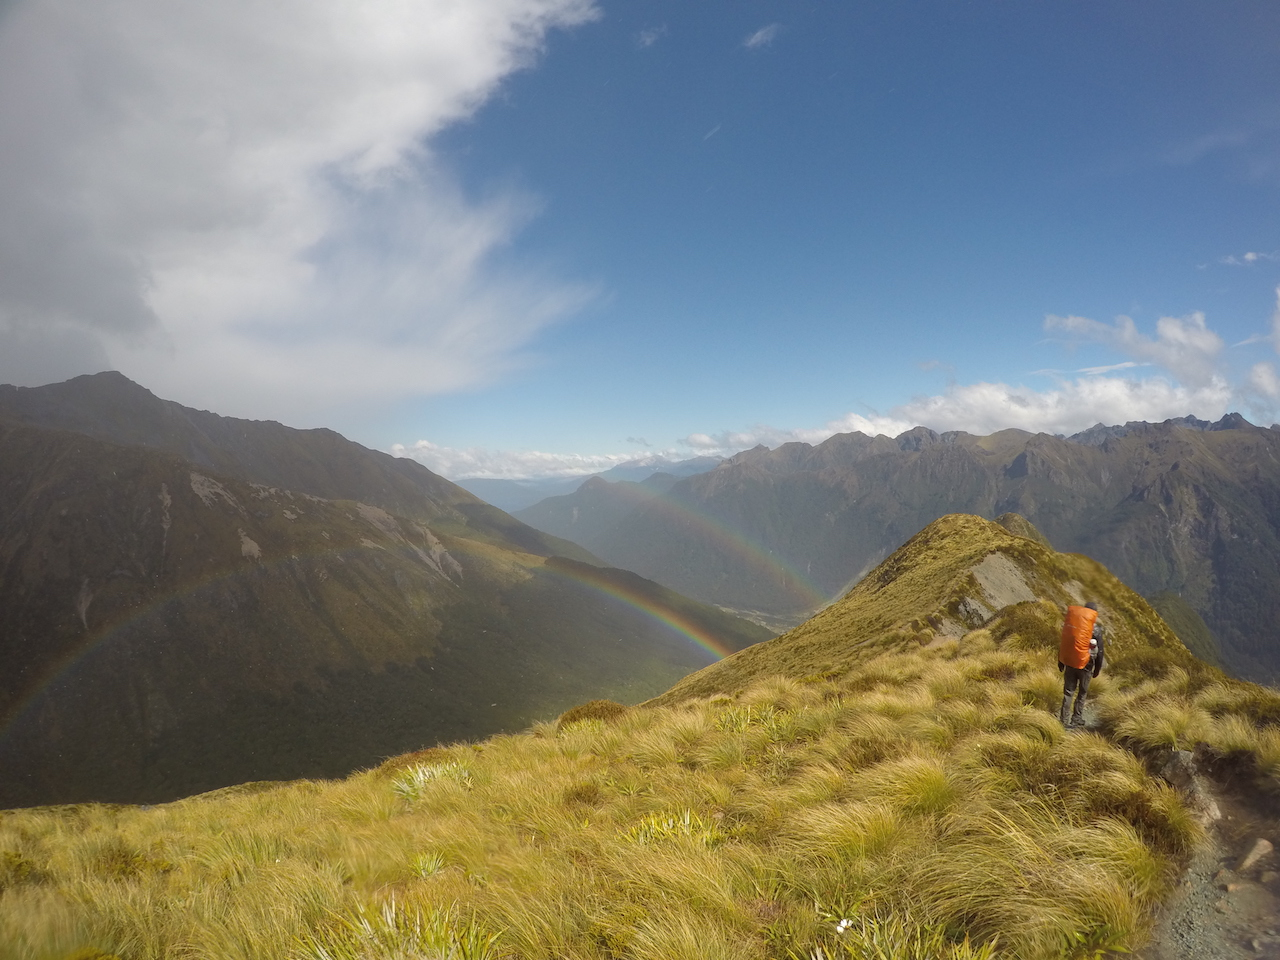 After rain pelting us sideways on the Kepler Track there was a brief respite where we got a double rainbow